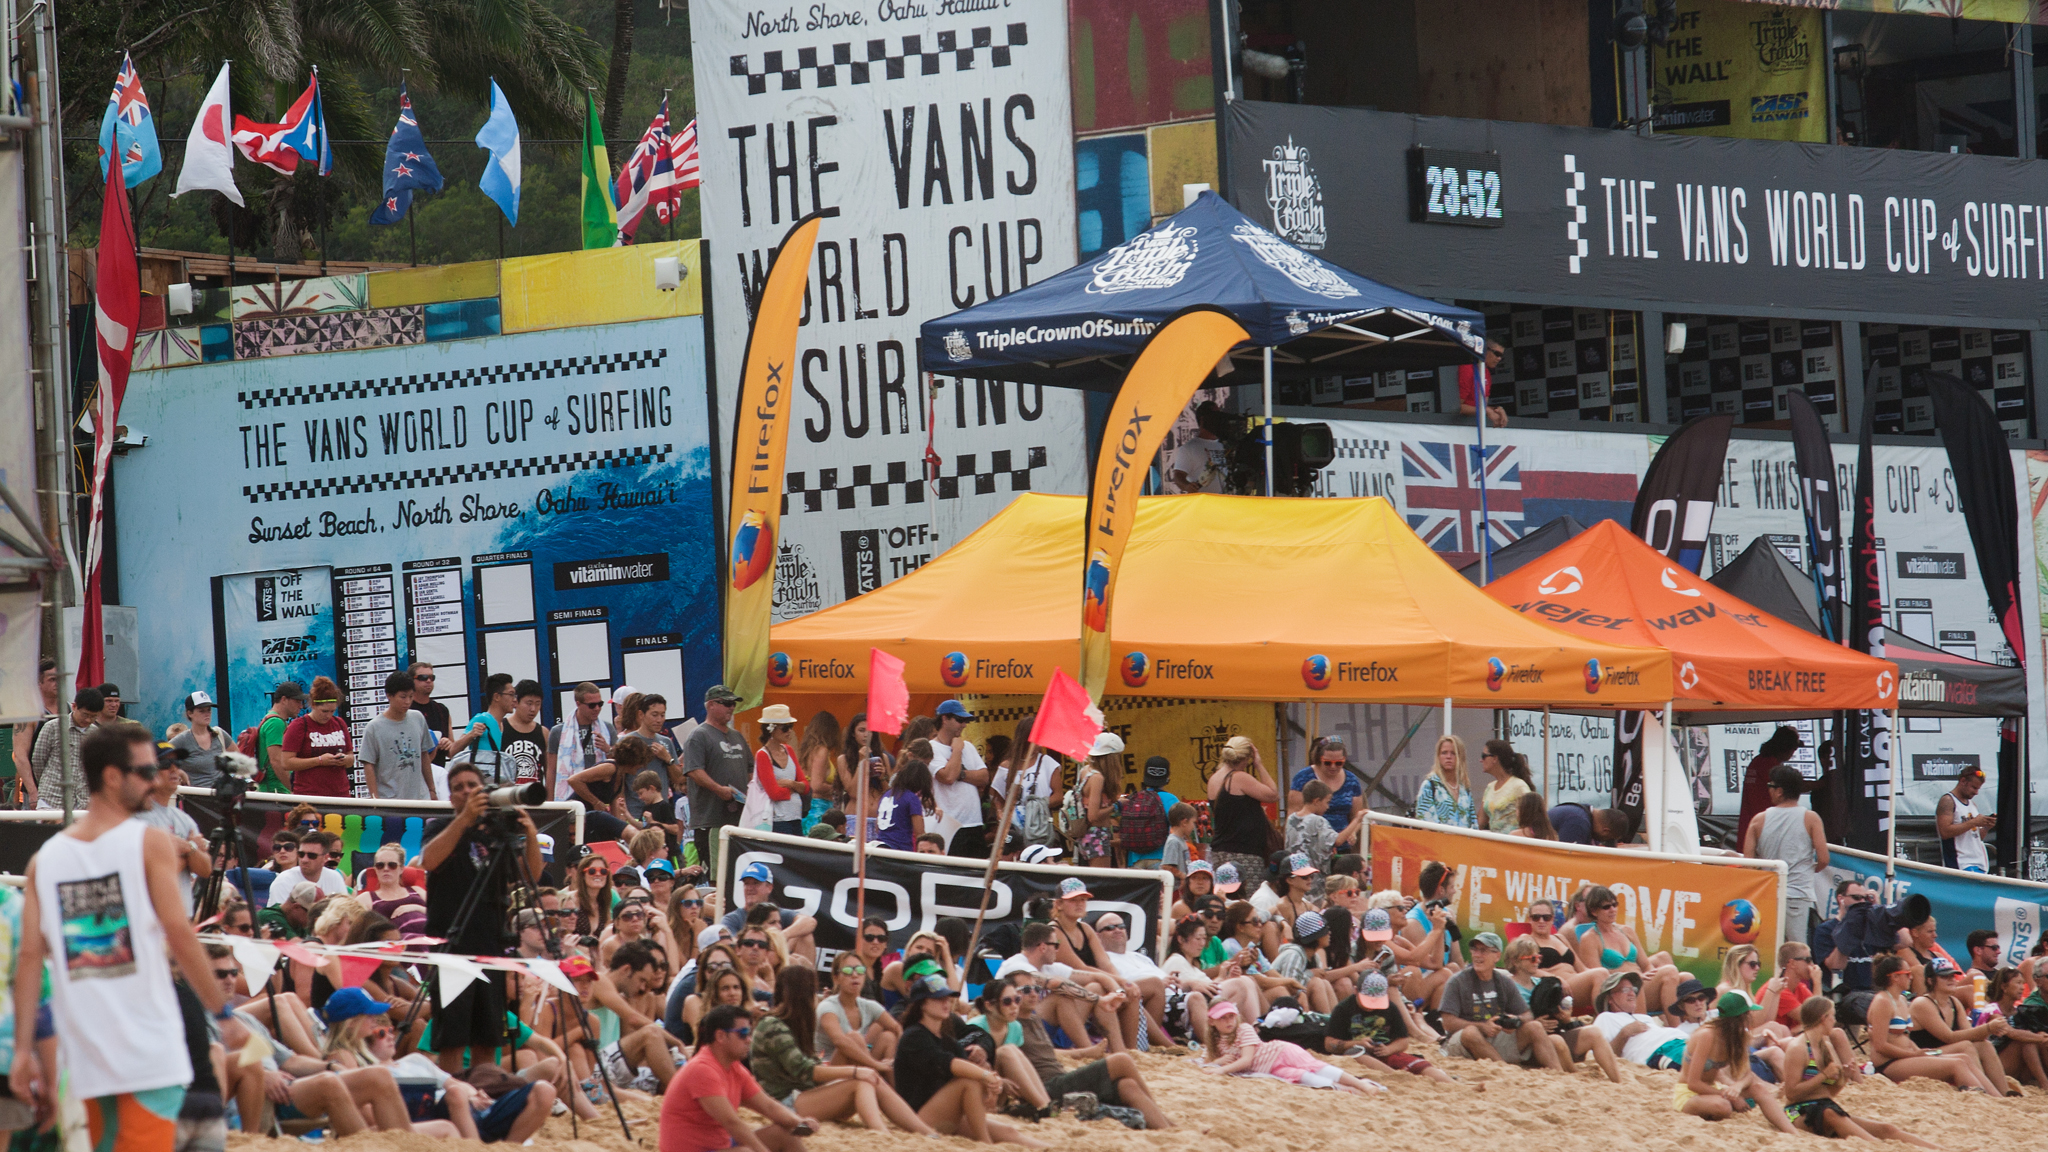 The Vans World Cup of Surfing